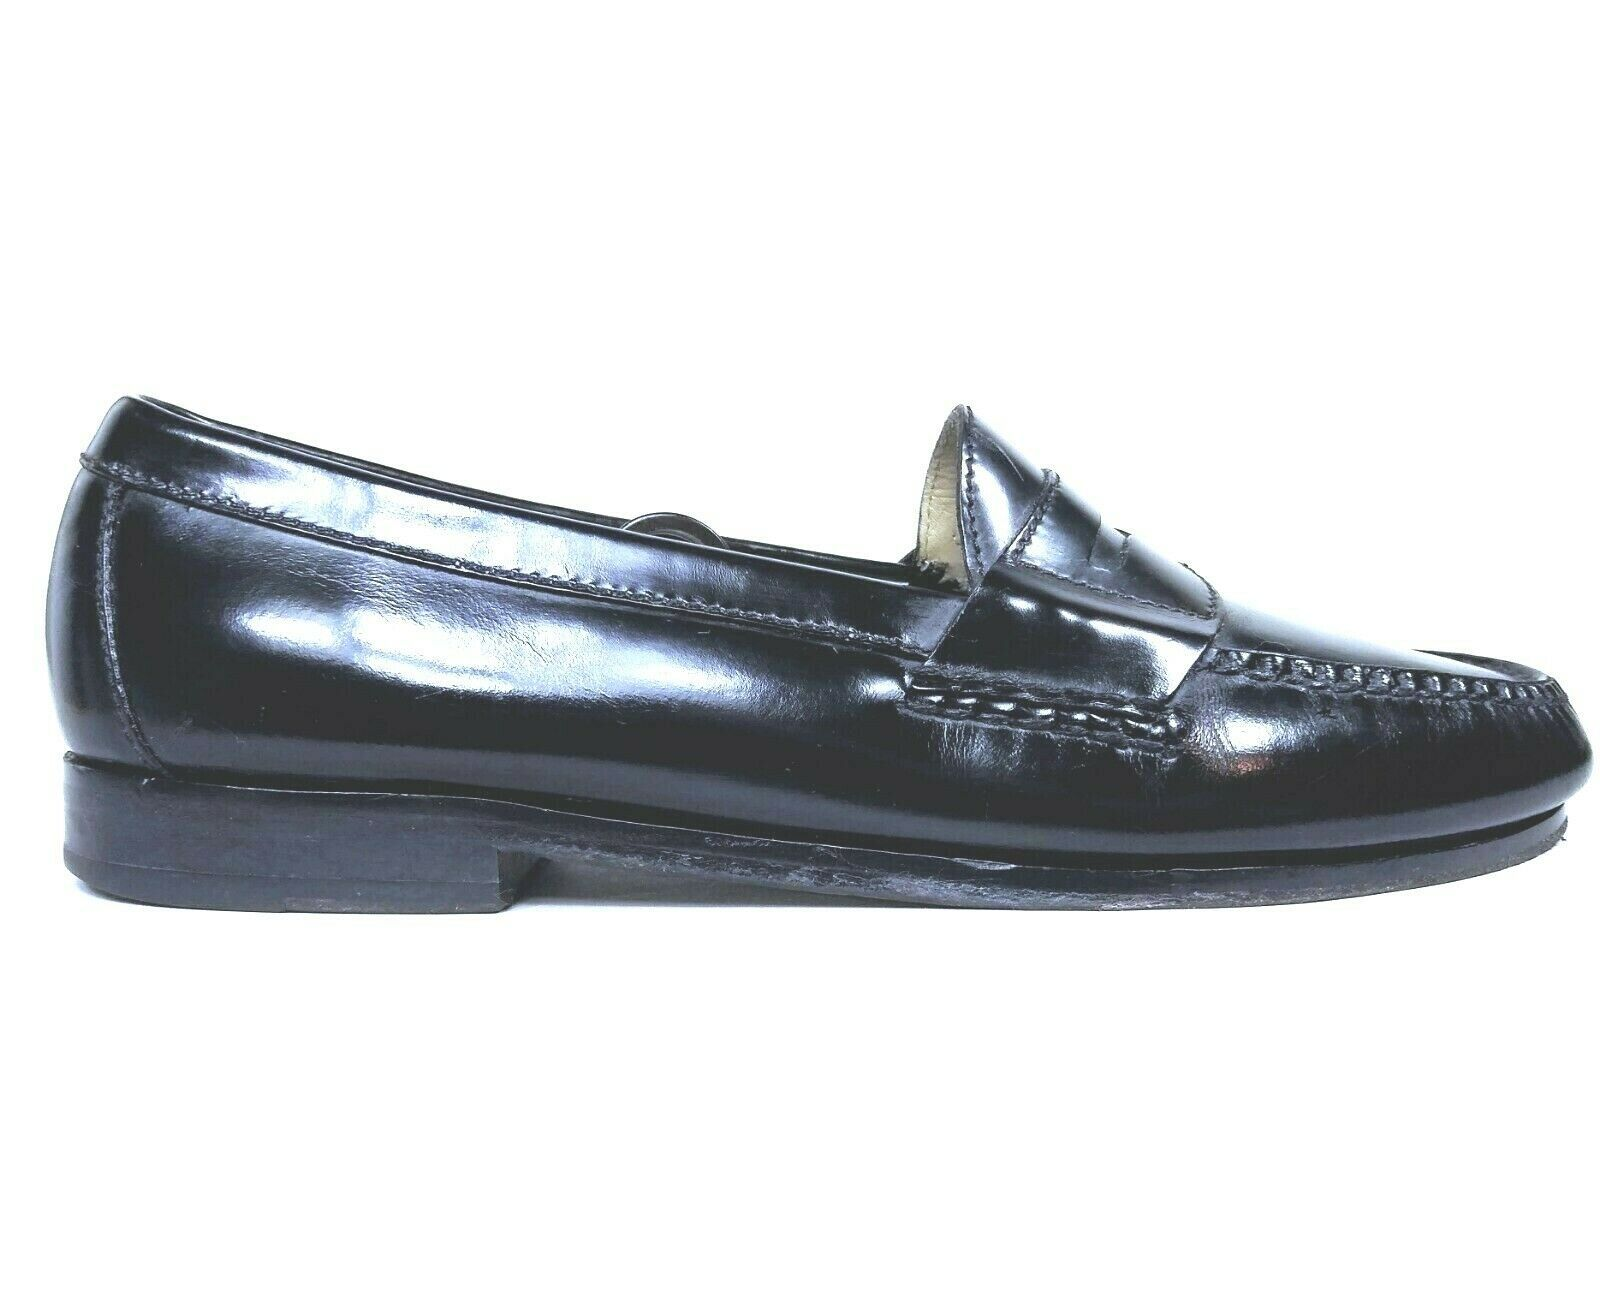 Cole Haan Mens Black Moc Toe Pinch Penny Leather Loafer Slip-on Shoes Size 9.5